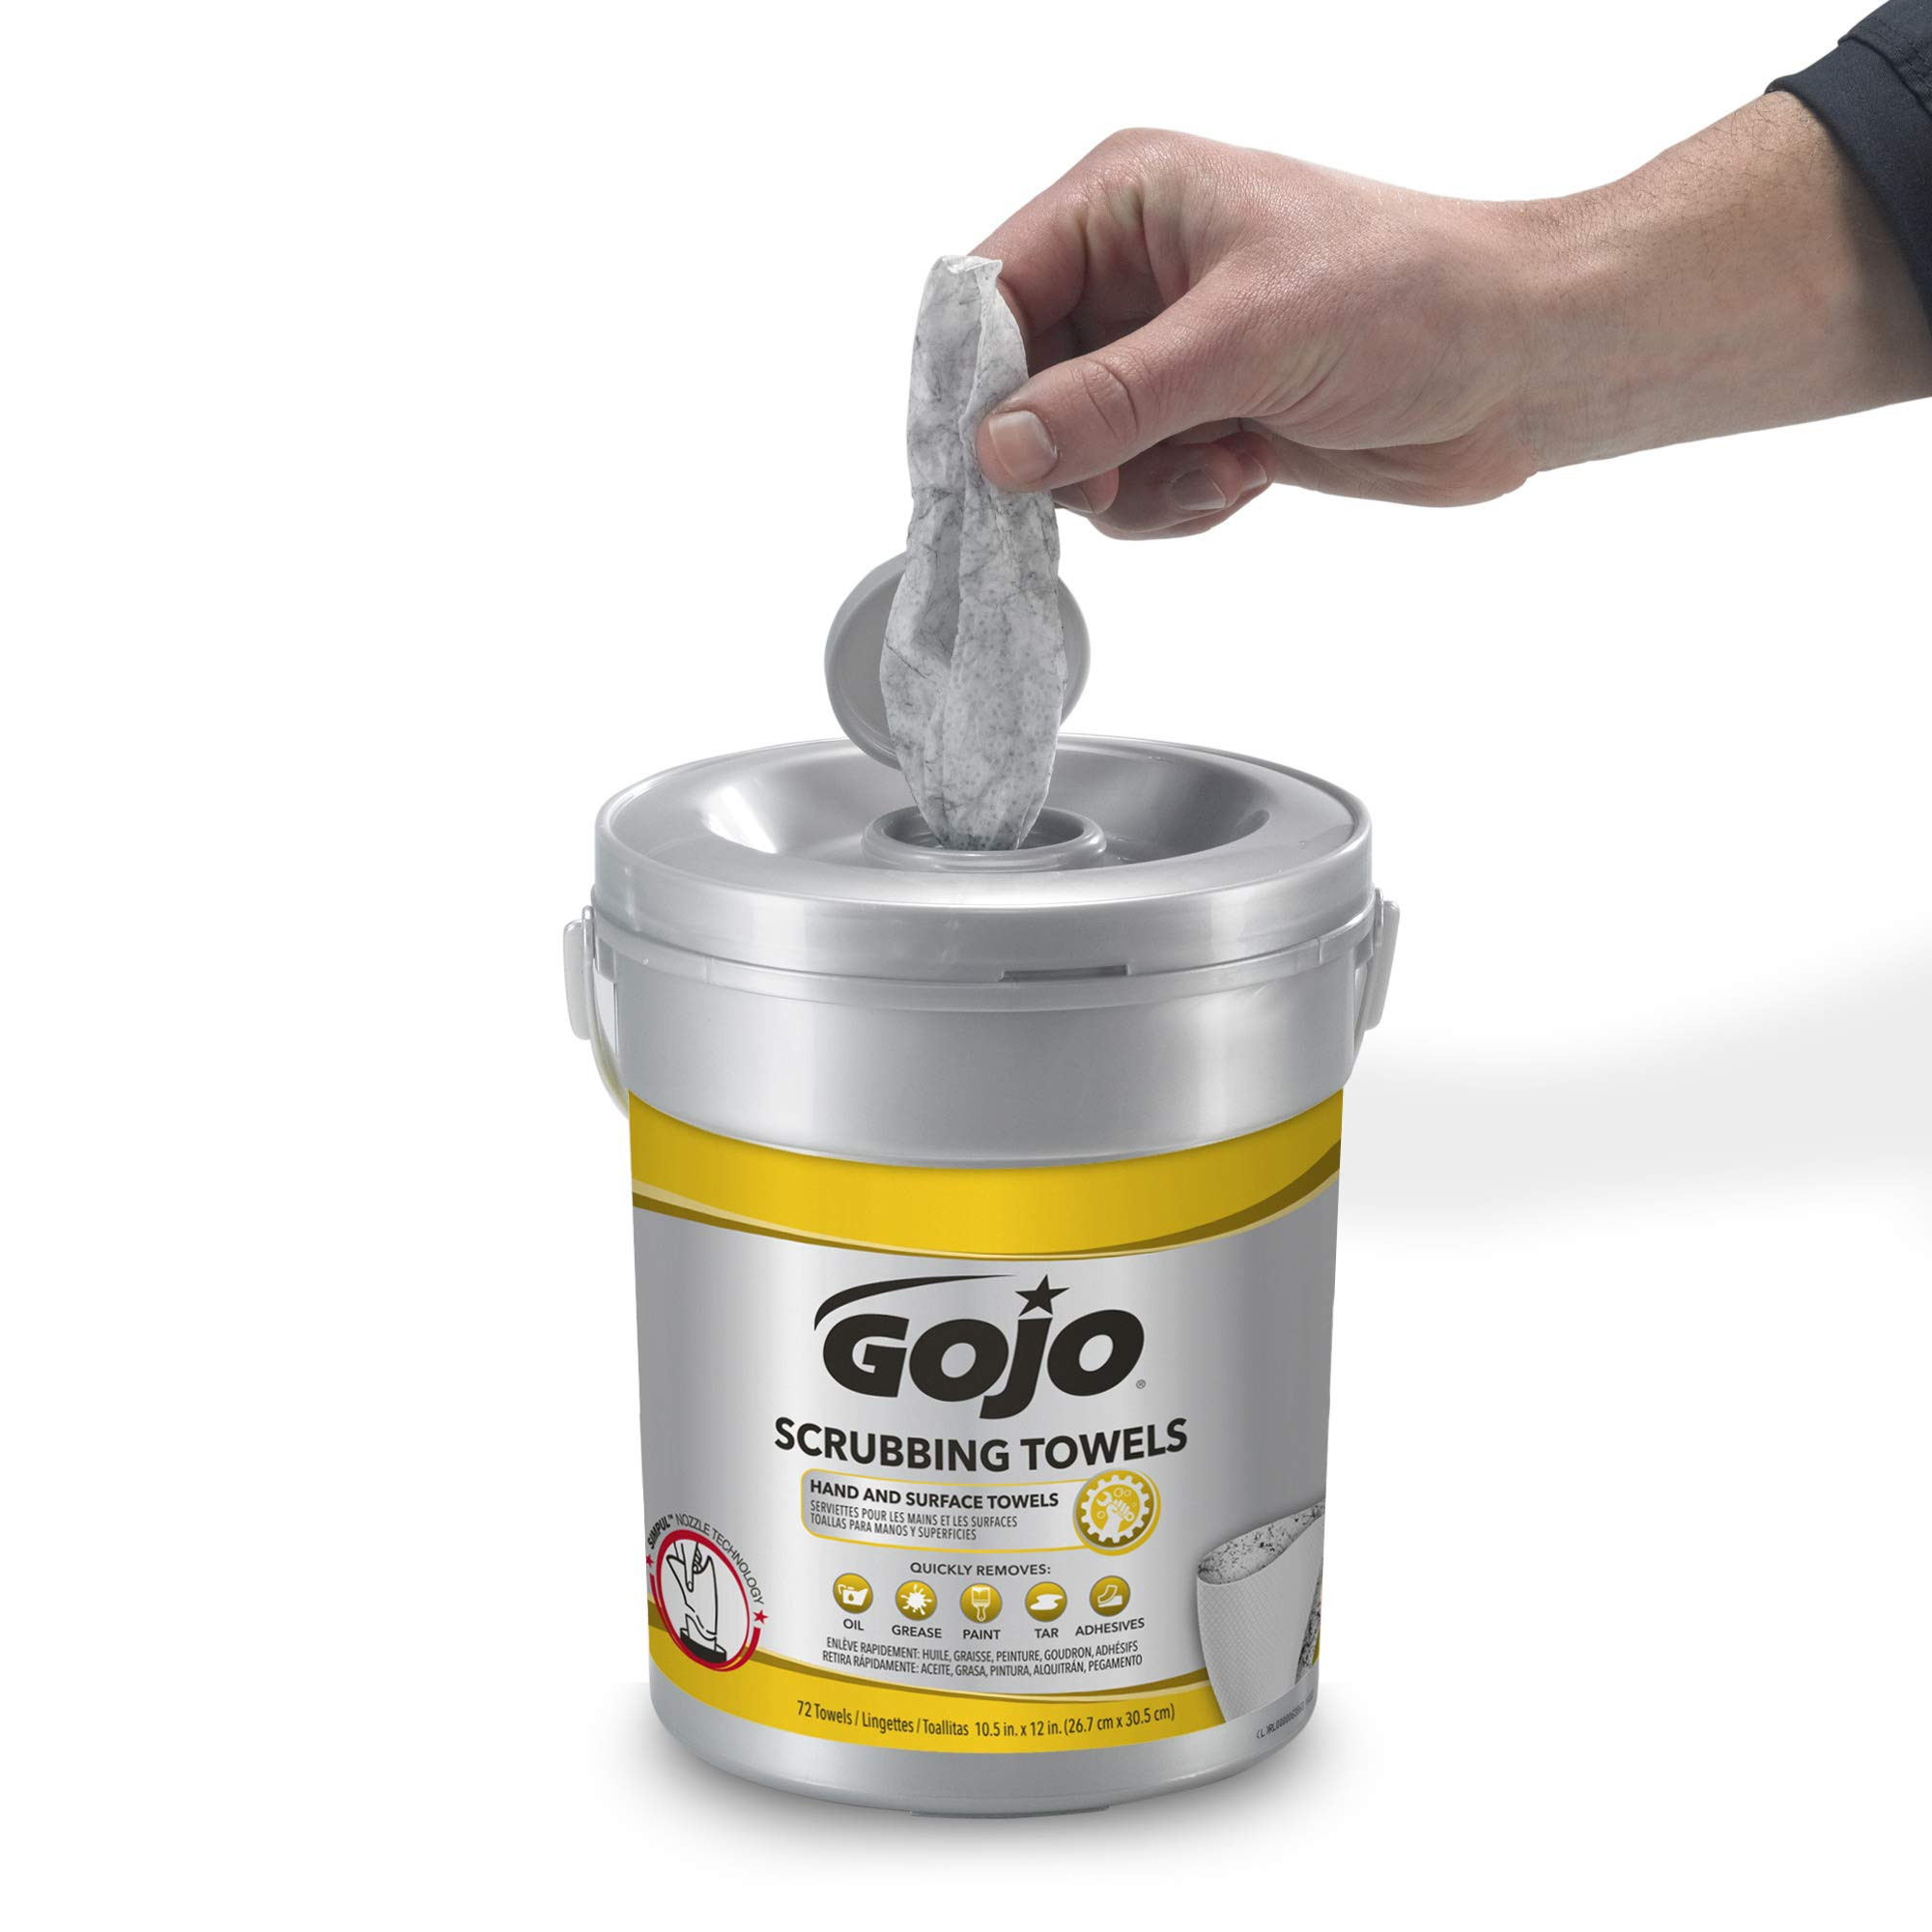 GOJO Hand and Surface Scrubbing Towels - Fresh Citrus Scent, 72 Count Heavy Duty Scrubbing Towels Canister (Case of 6) - 6396-06 by Gojo (Image #6)